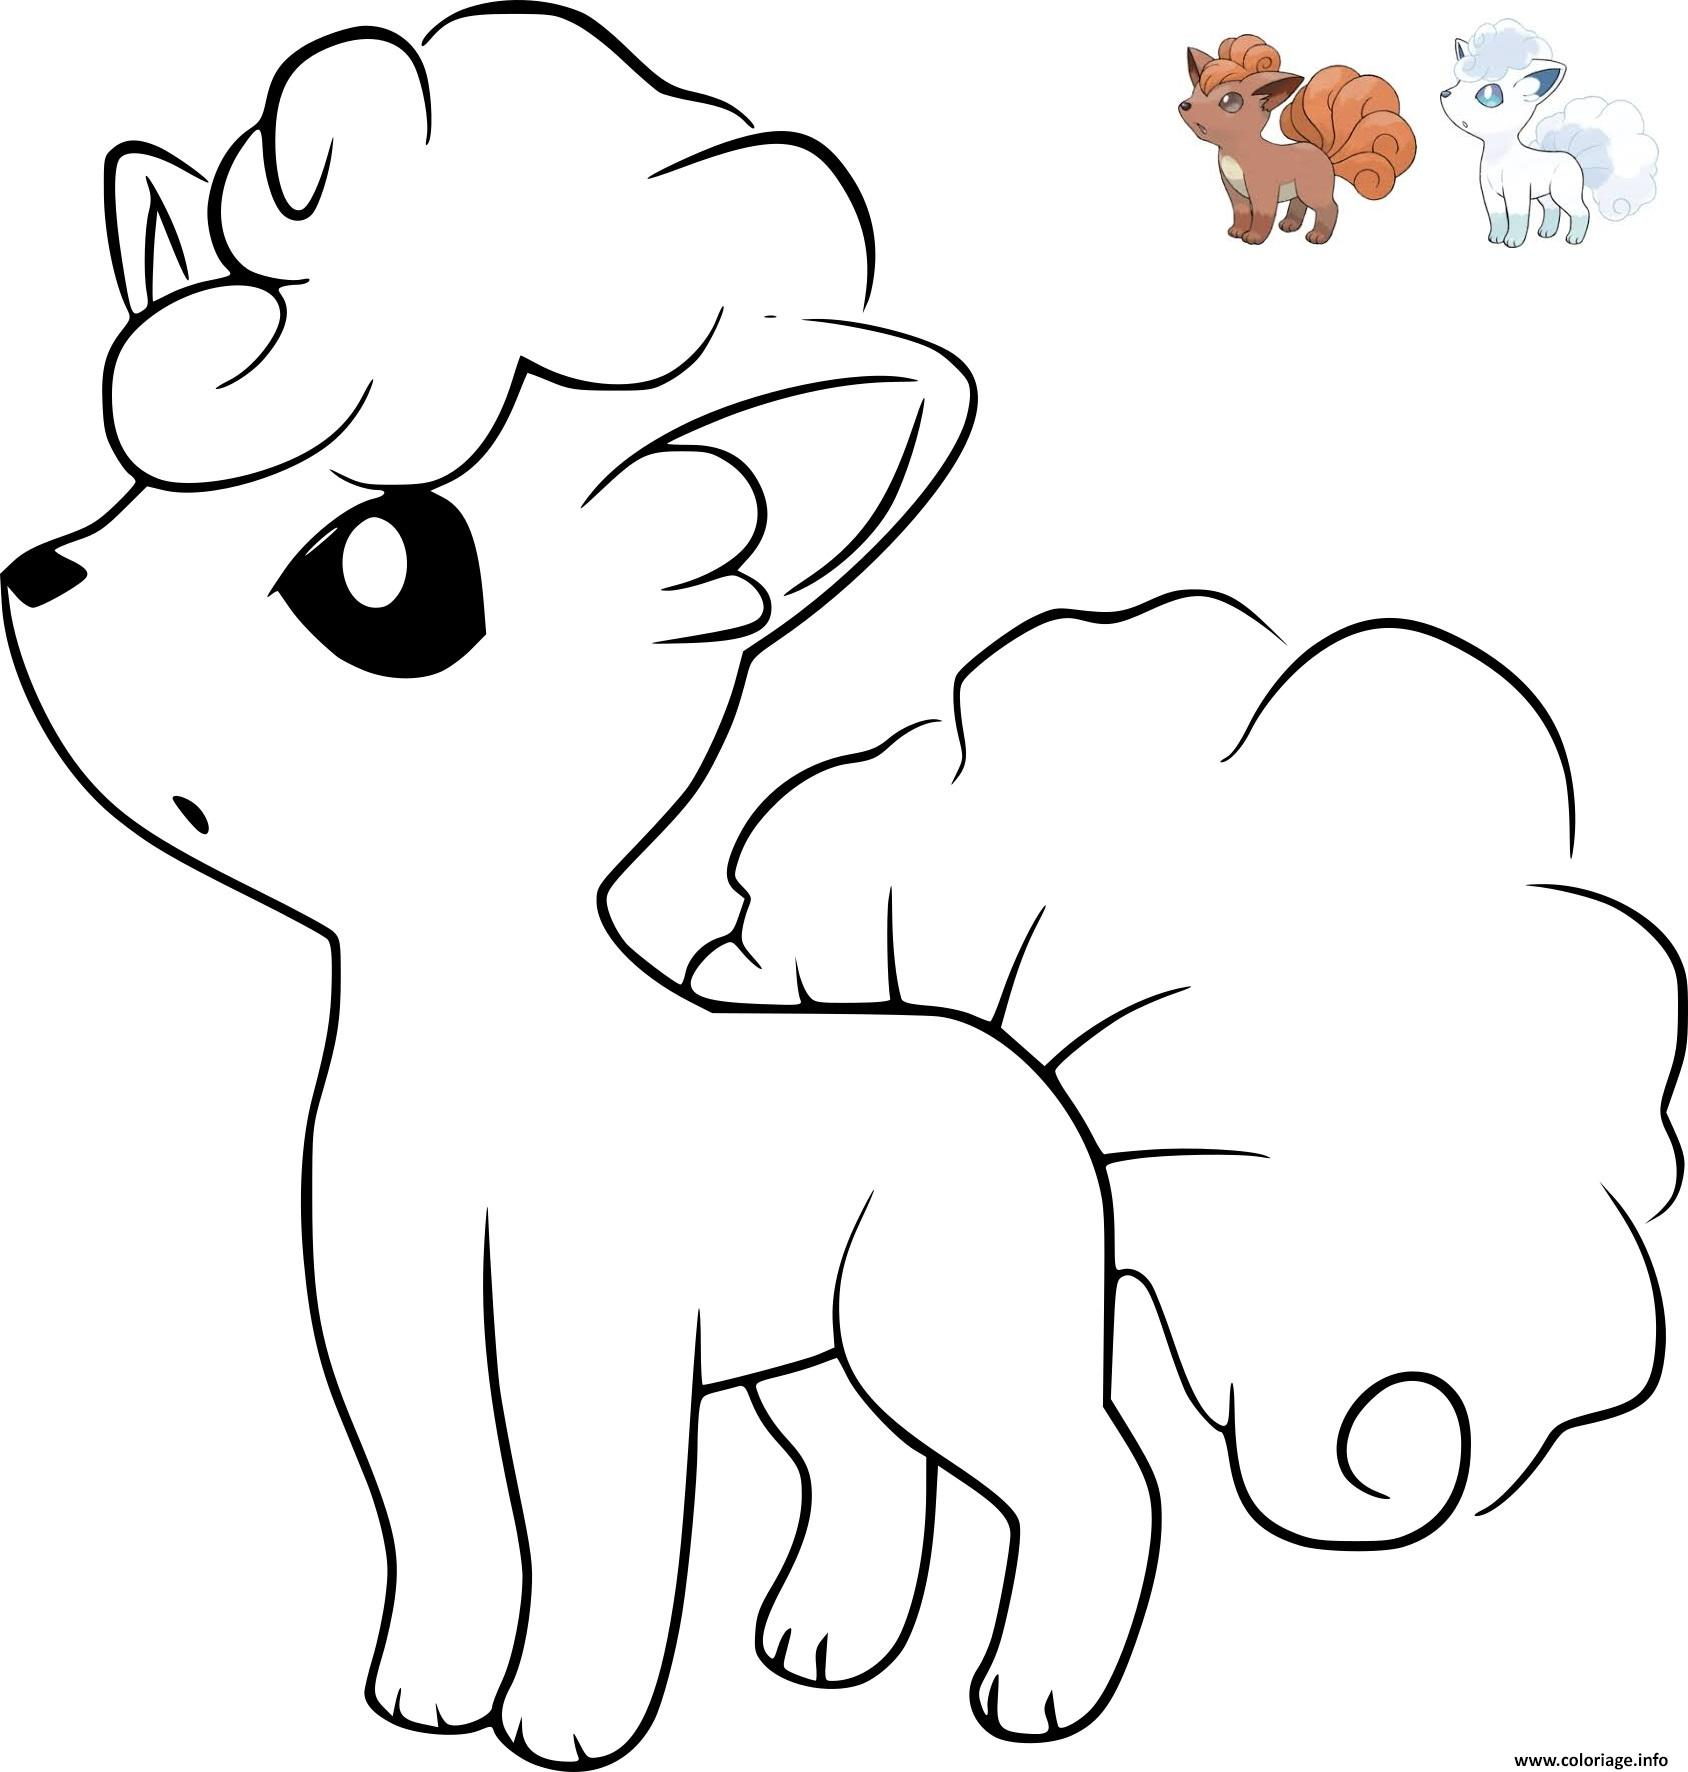 Coloriage pokemon alola goupix - Coloriage de pokemon a imprimer ...